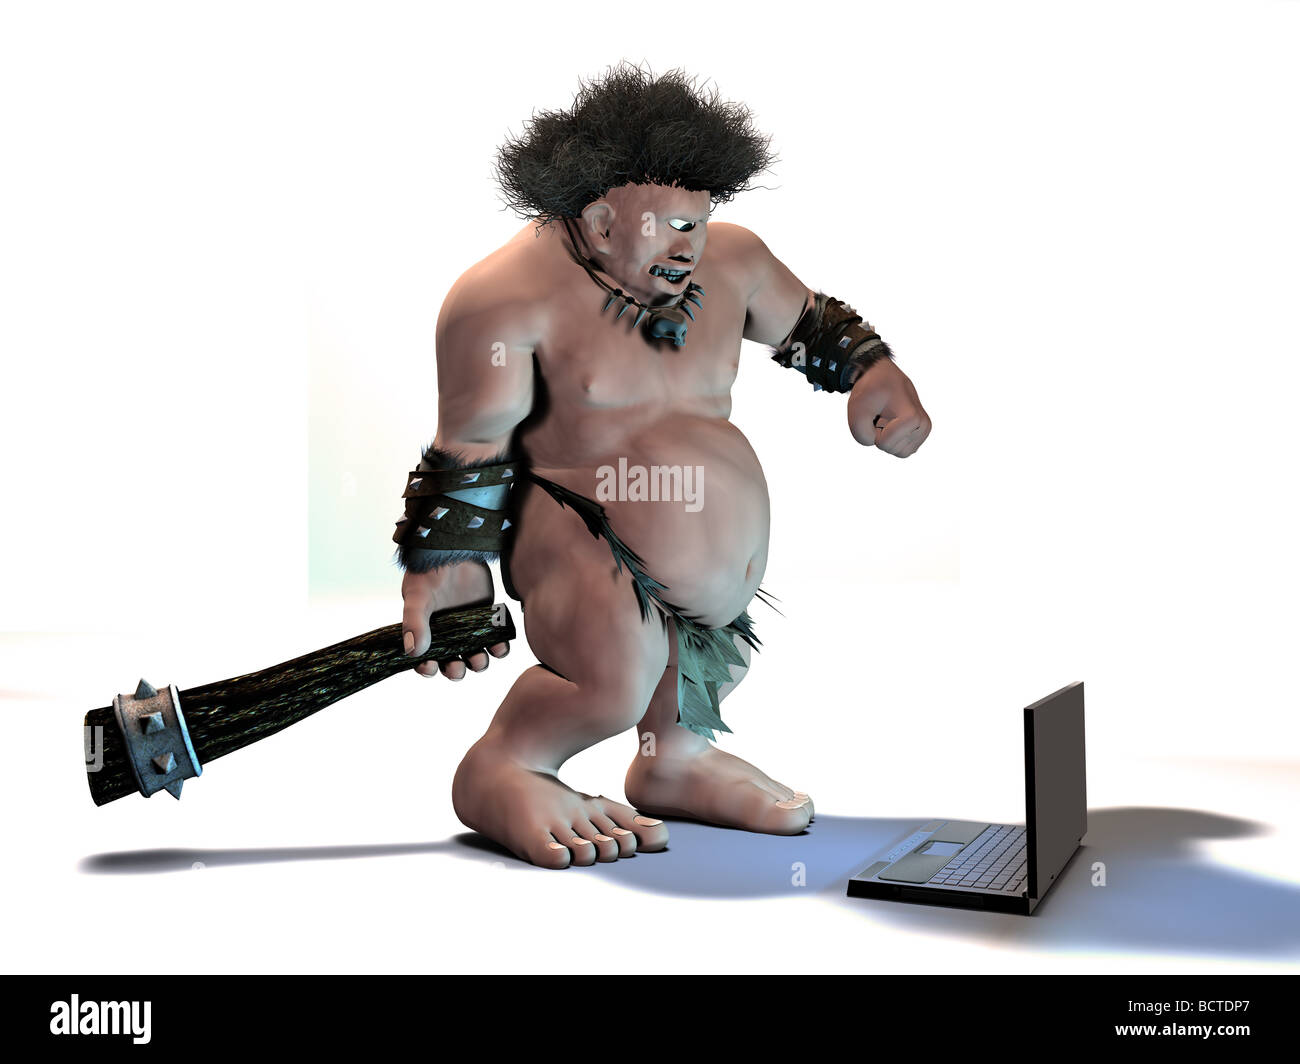 A one-eyed caveman gets frustrated with his new laptop computer and prepares to 'fix' it. - Stock Image